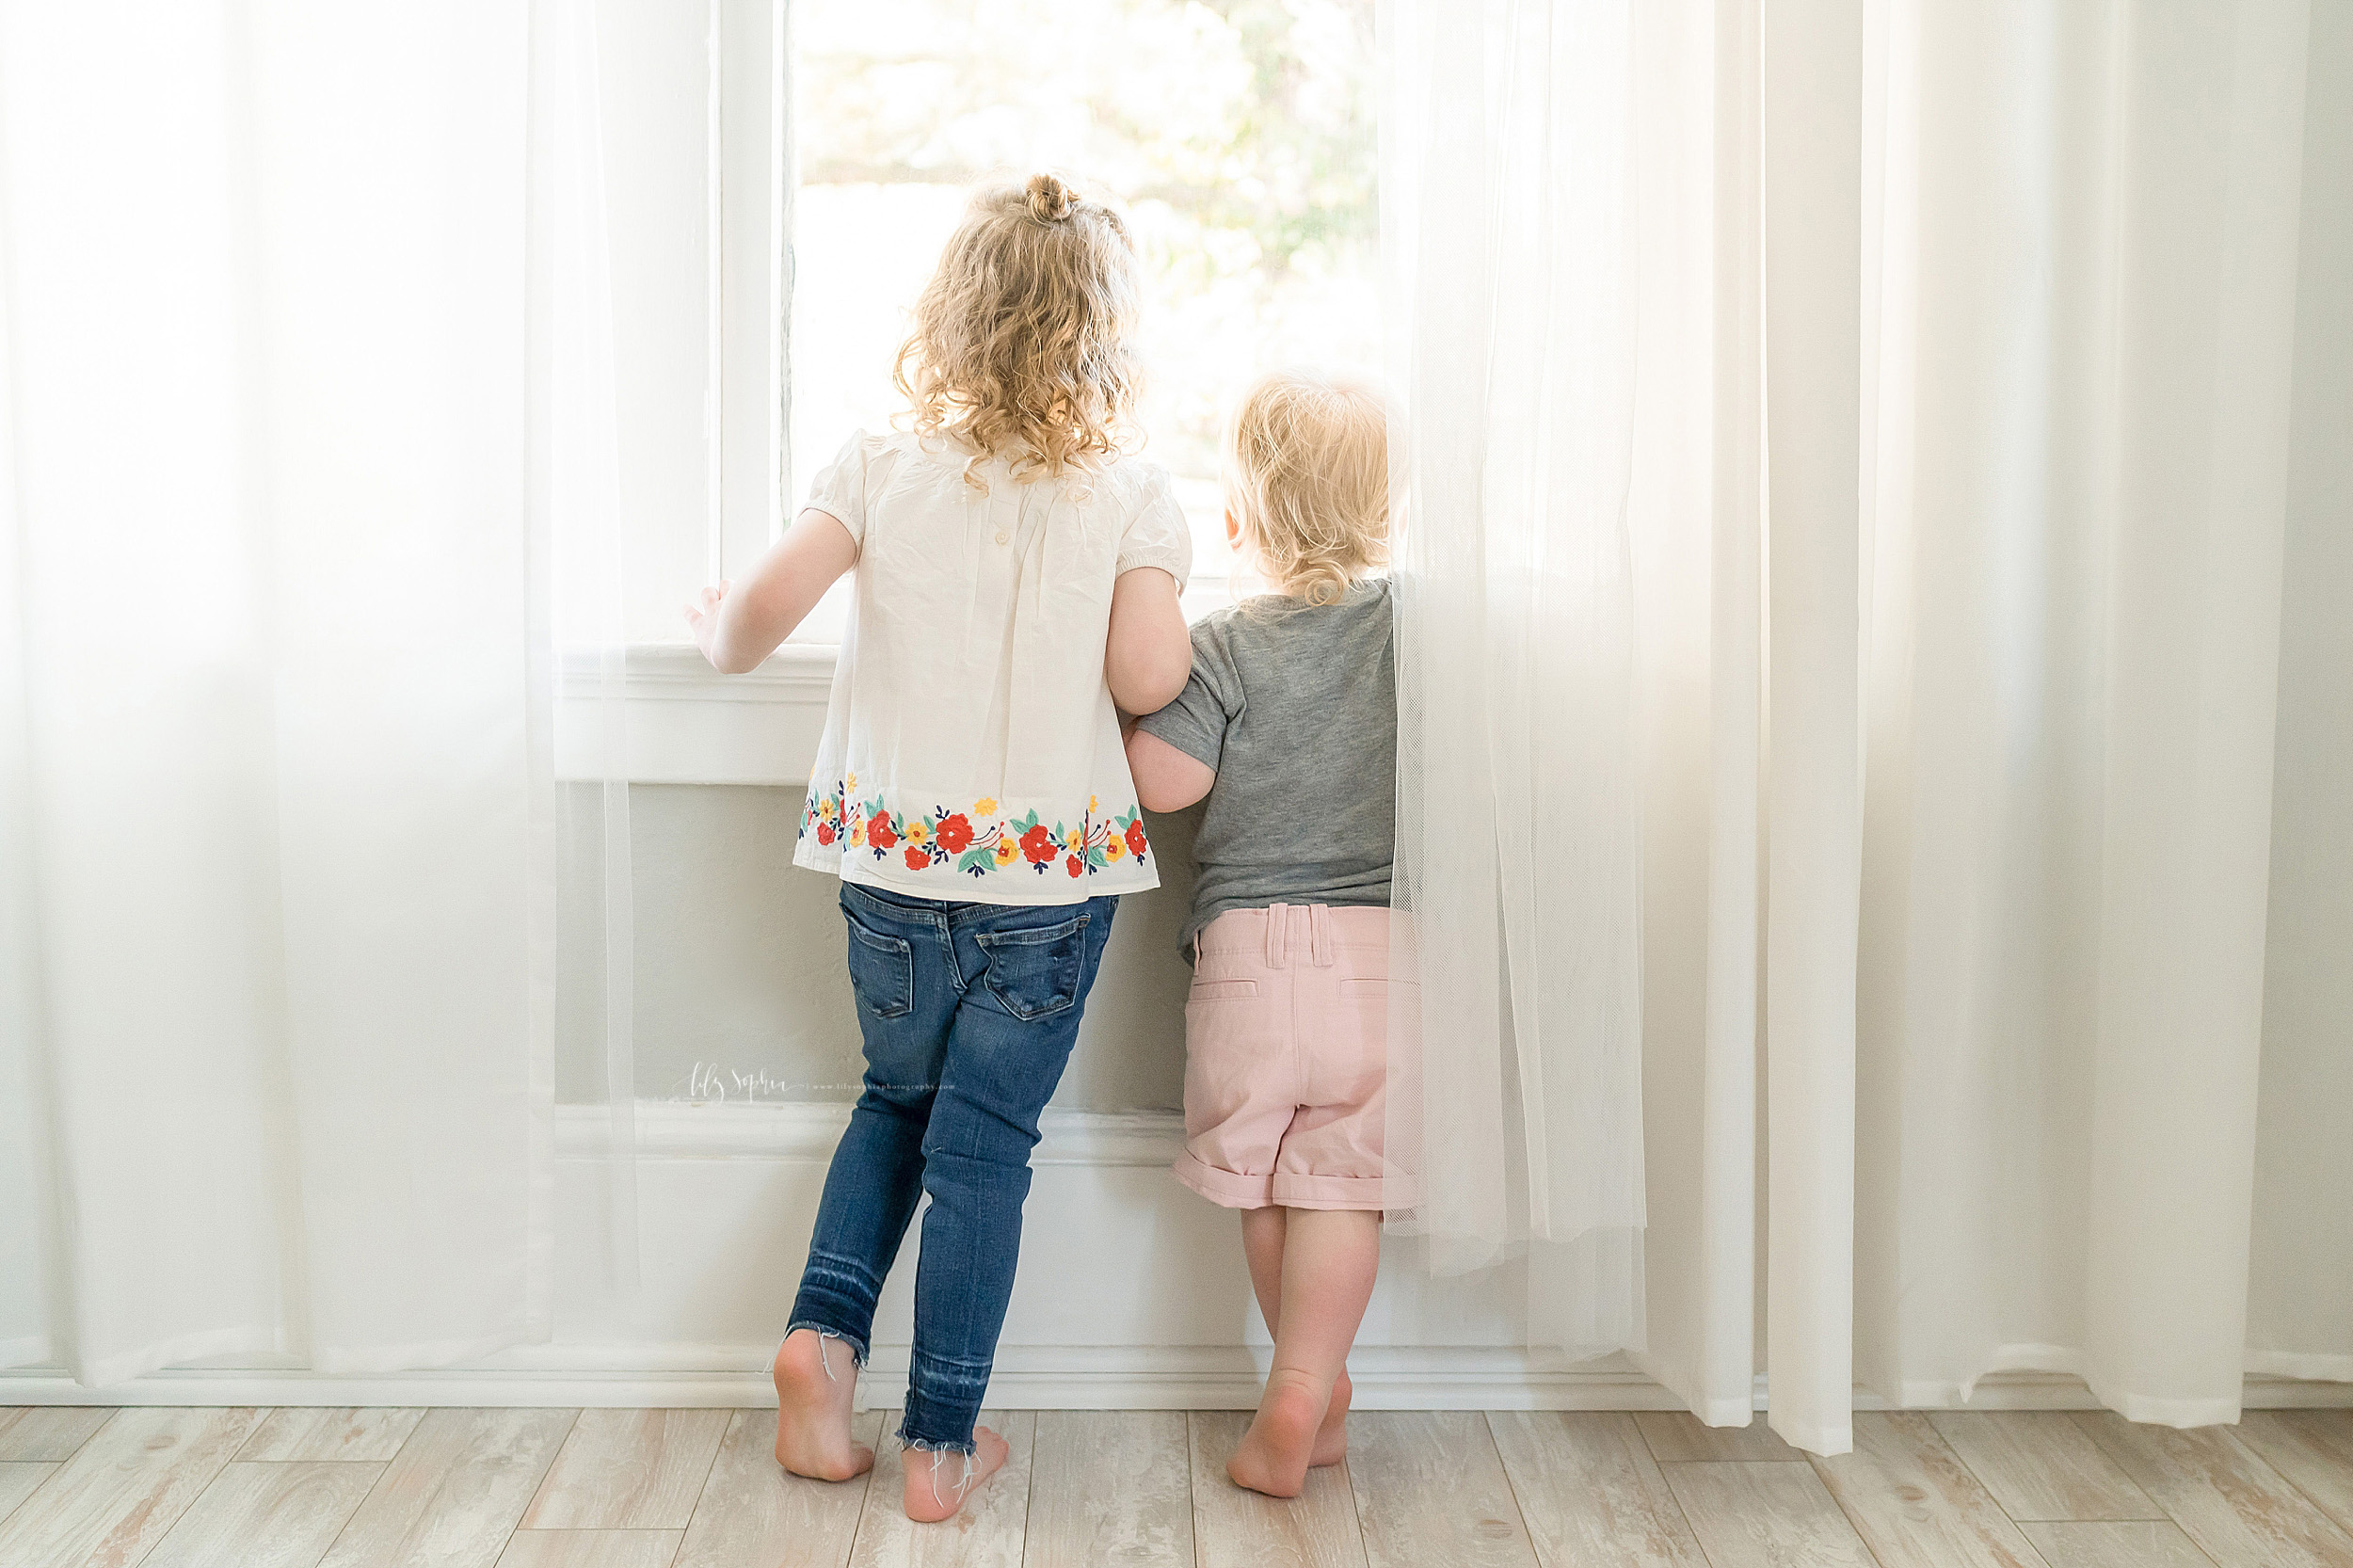 Family photo of siblings looking out a window taken by Lily Sophia Photography in an Atlanta natural light studio.